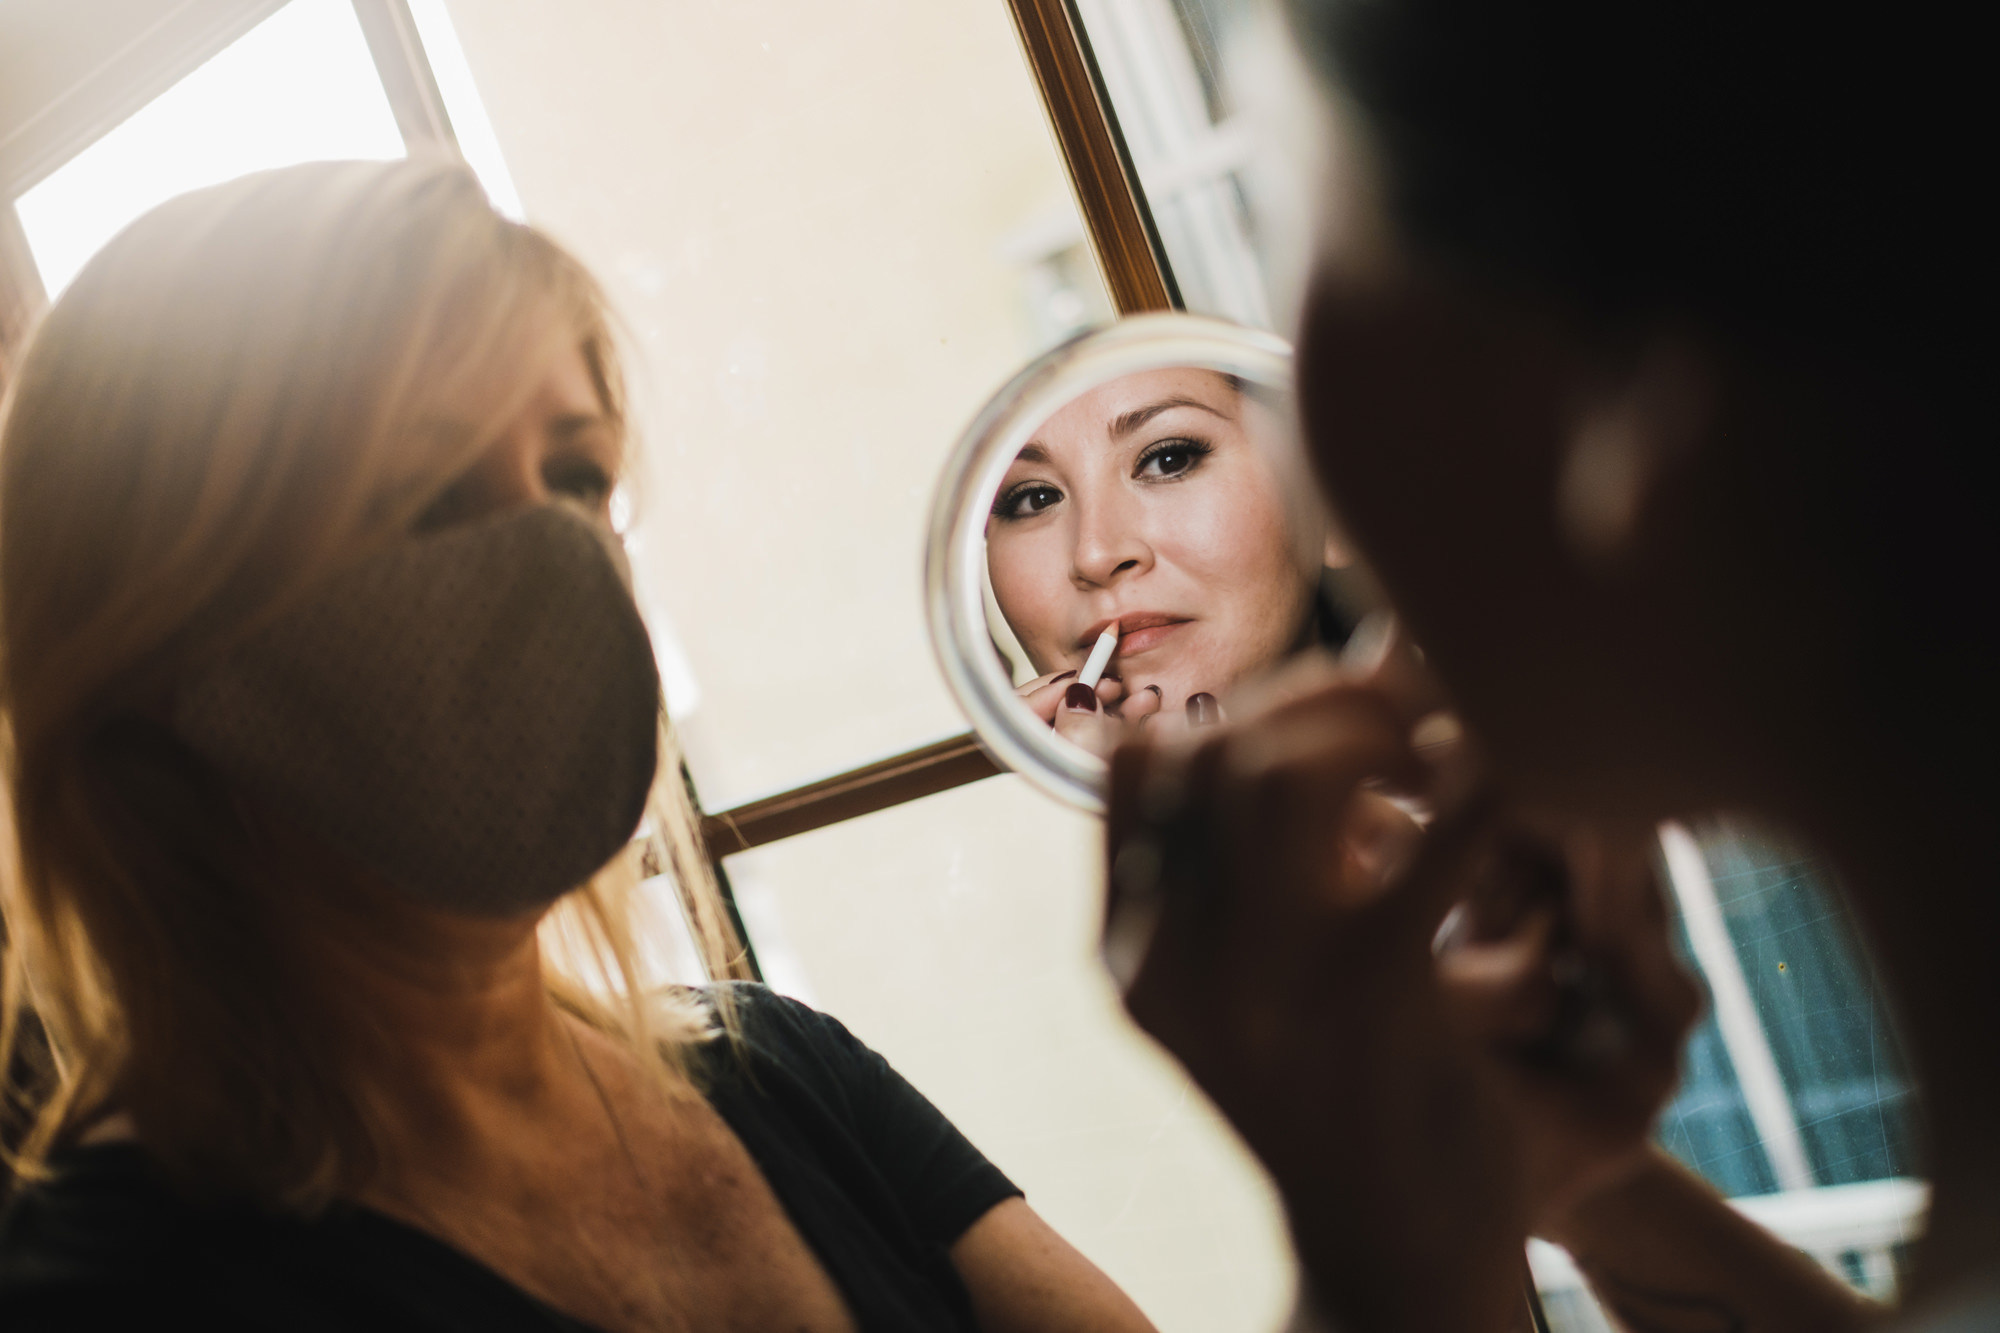 bride getting her makeup on by makeup artist with mask- photo by Chrisman Studios, charleston, restoration